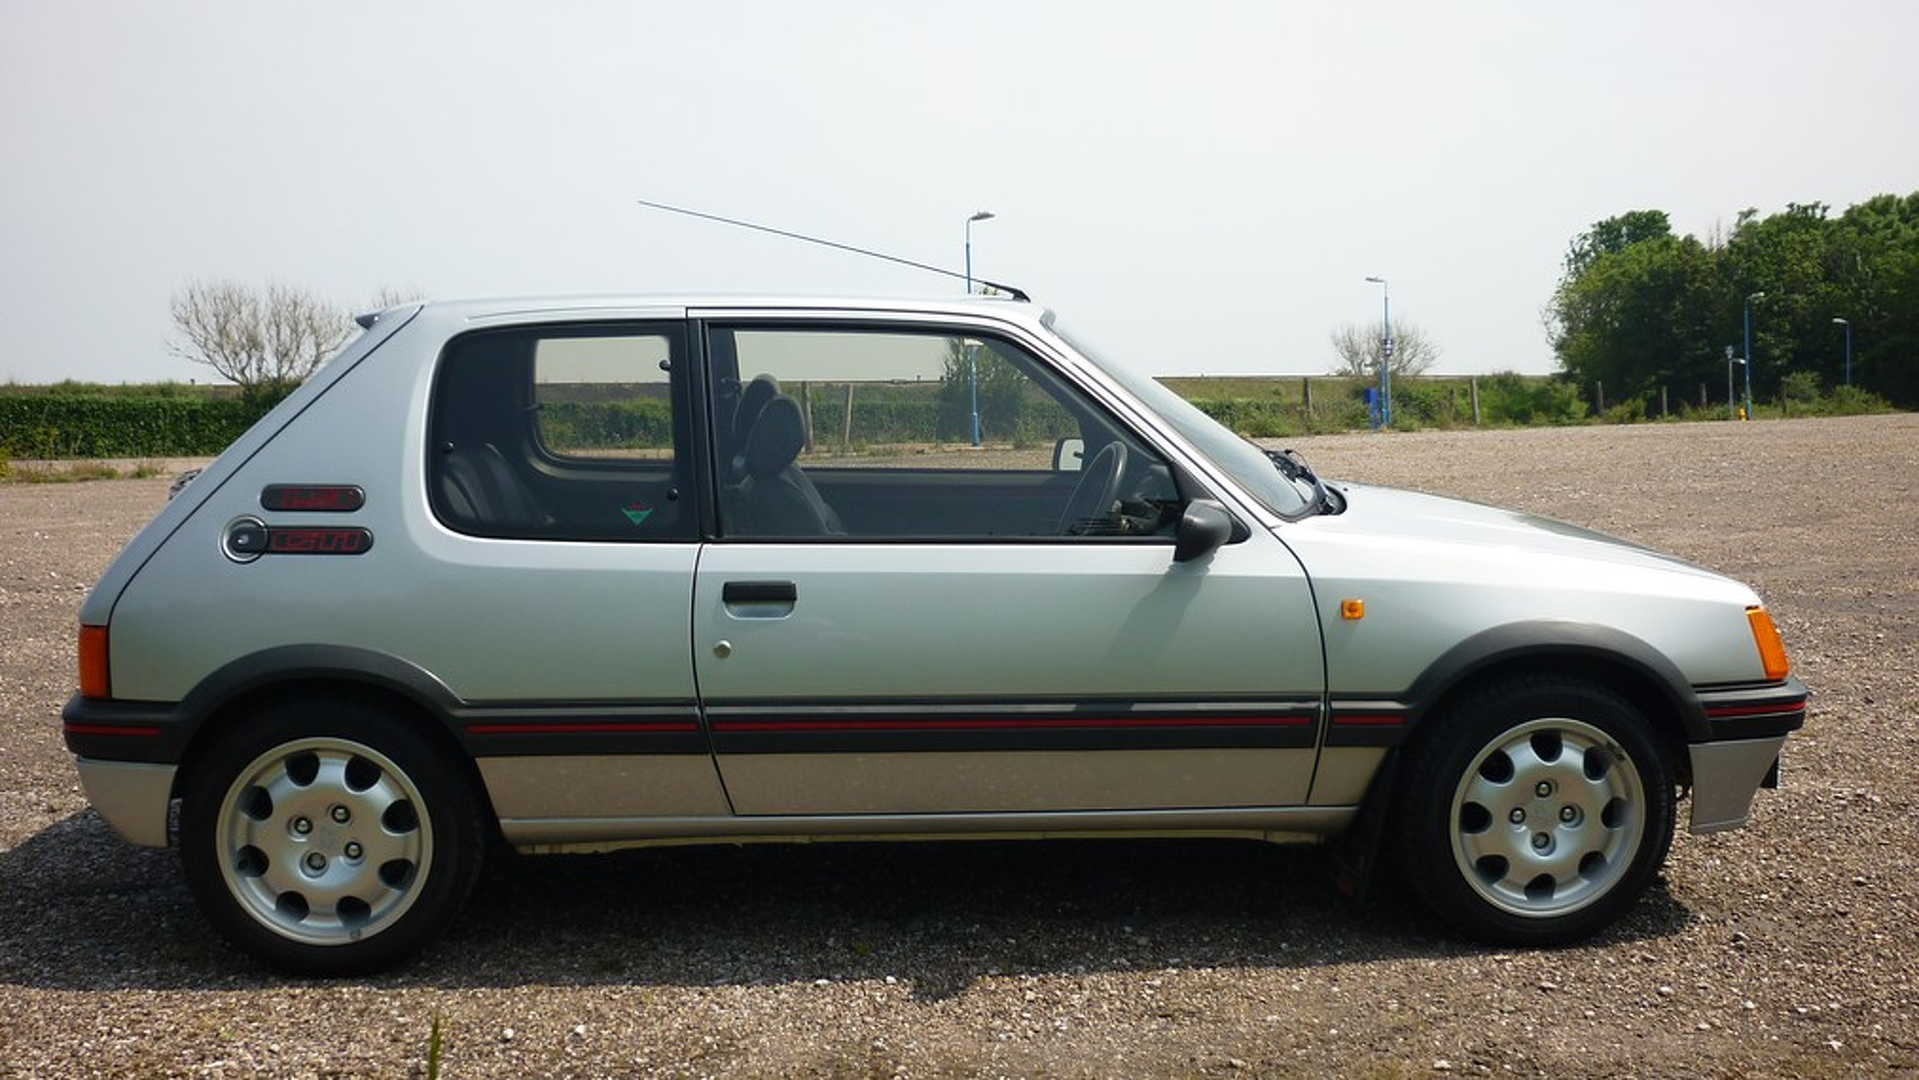 Vloermat 205 Gti.1989 Peugeot 205 Gti Sells For 31k And Sets New World